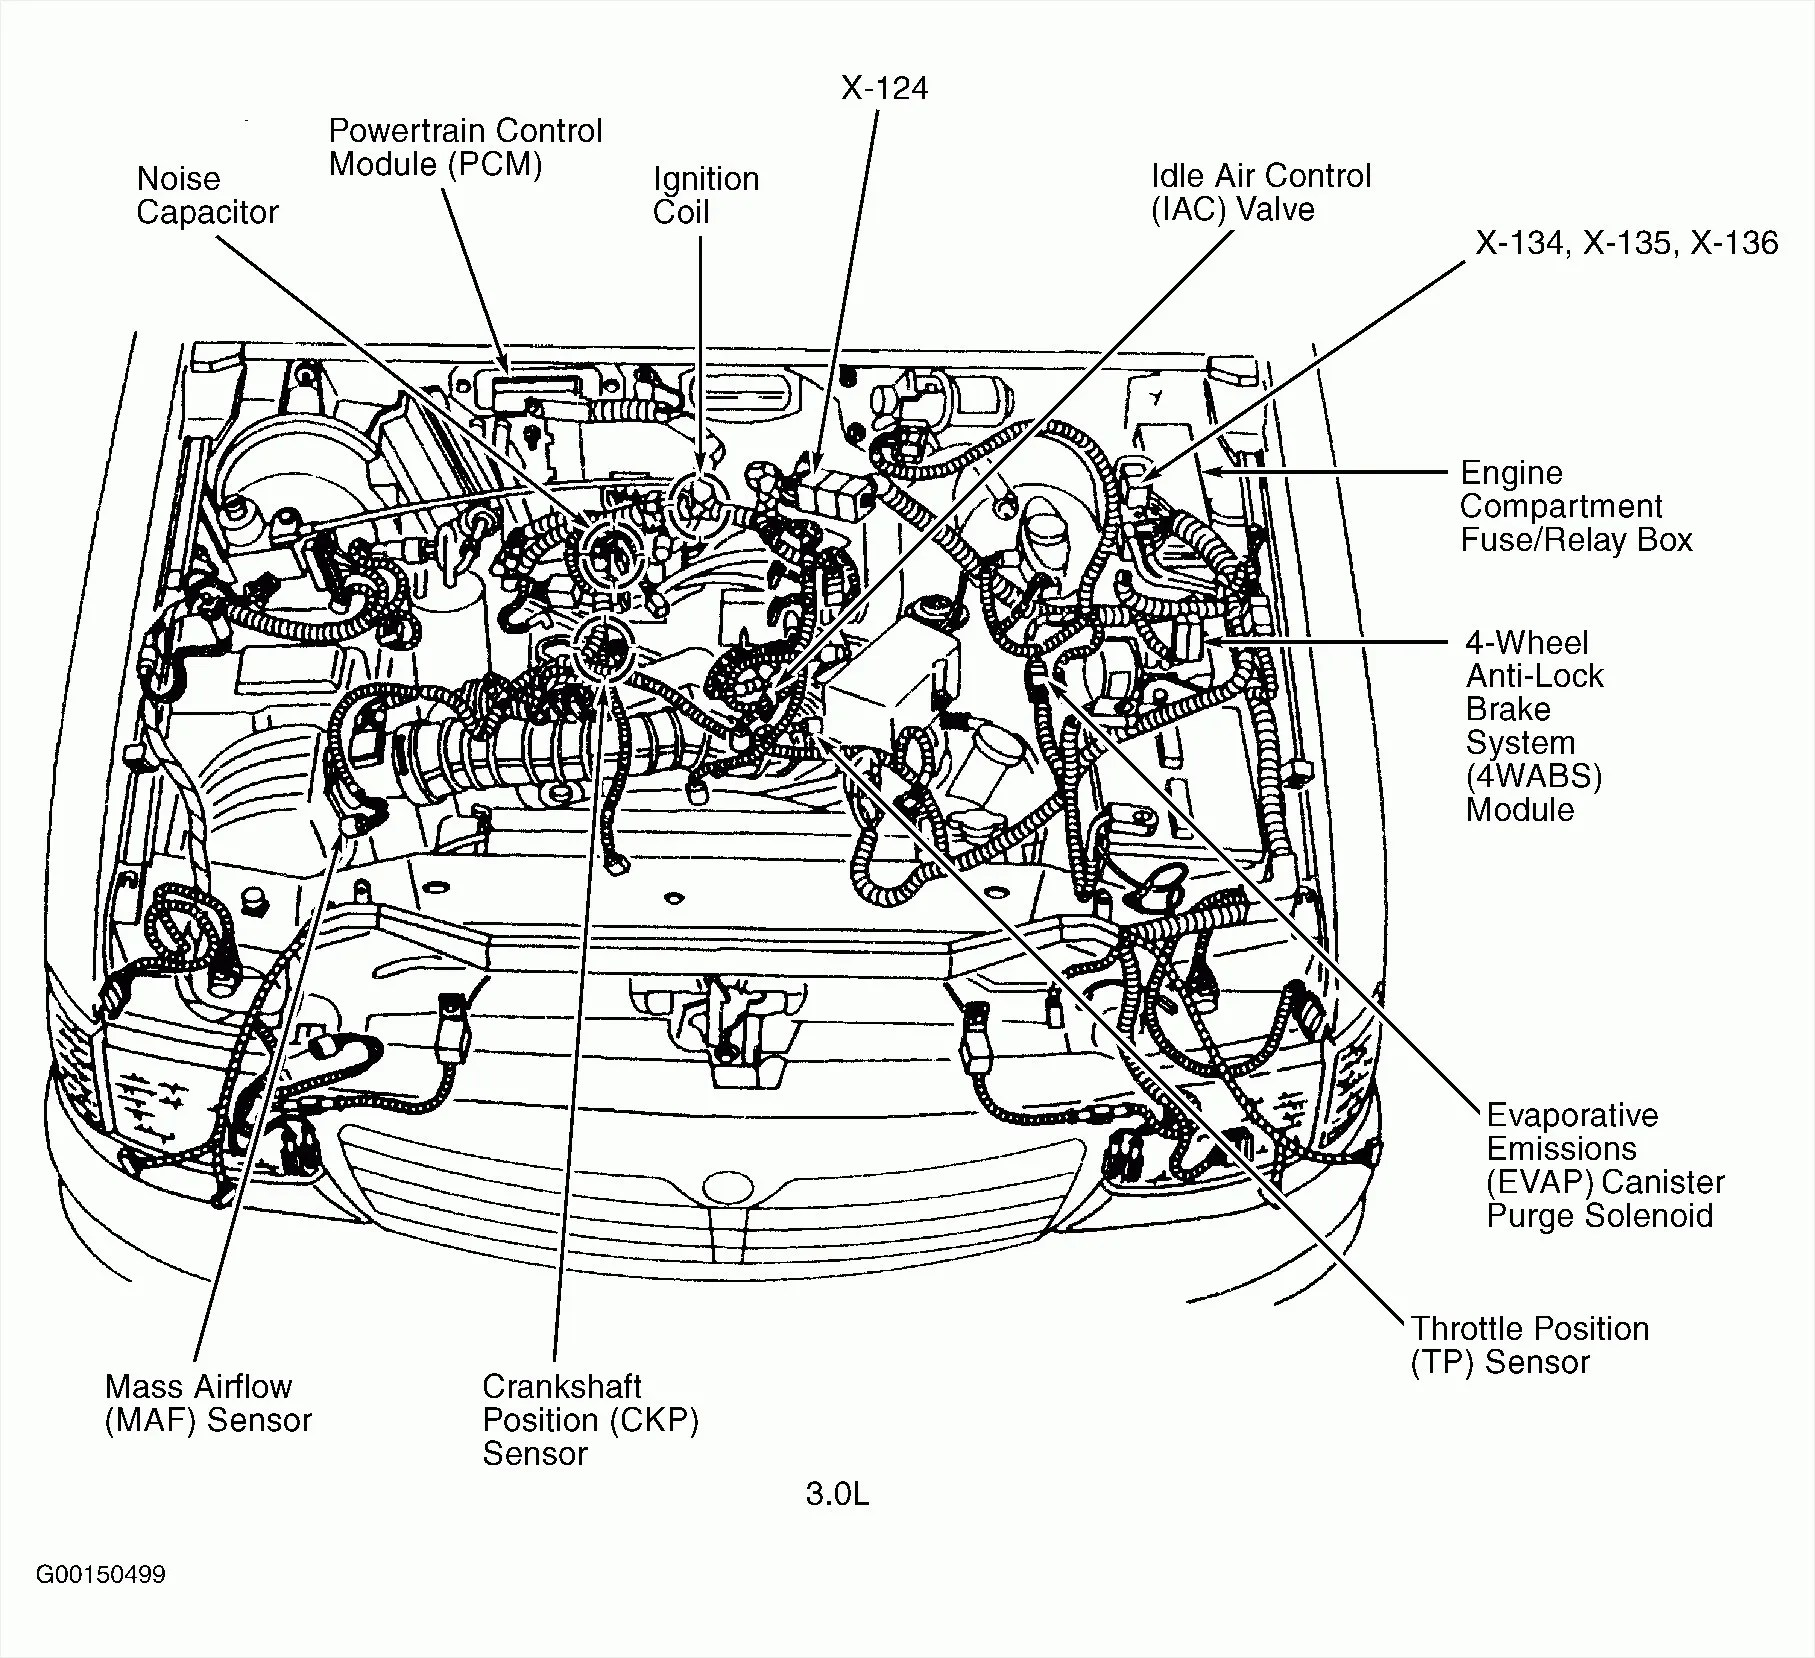 hight resolution of 95 taurus wiring diagram wiring diagrams konsult95 ford taurus engine diagram wiring diagrams konsult 95 taurus